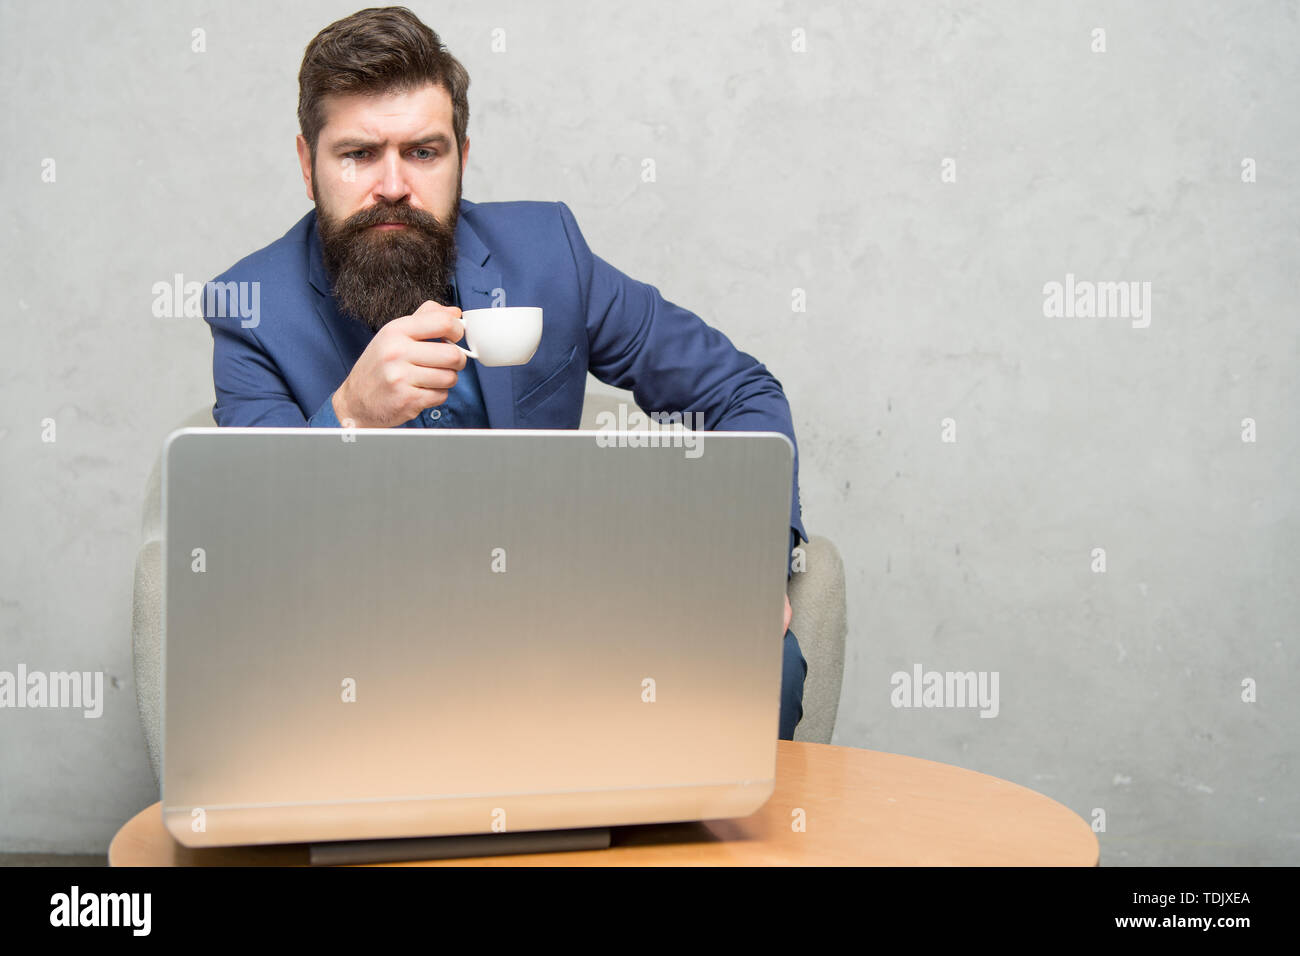 Modern businessman. Businessman work laptop. Responding business email. Surfing internet. Project manager. Digital business. Financial consultation. Banker or accountant. Business correspondence. - Stock Image